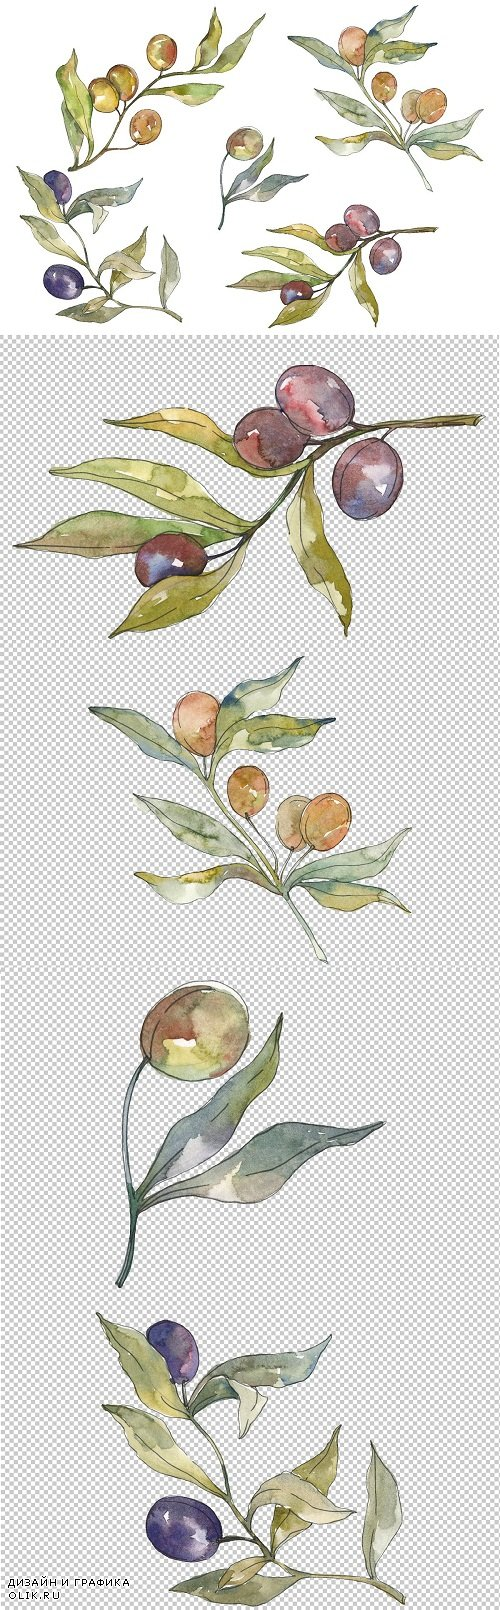 Olives Watercolor png - 3584162